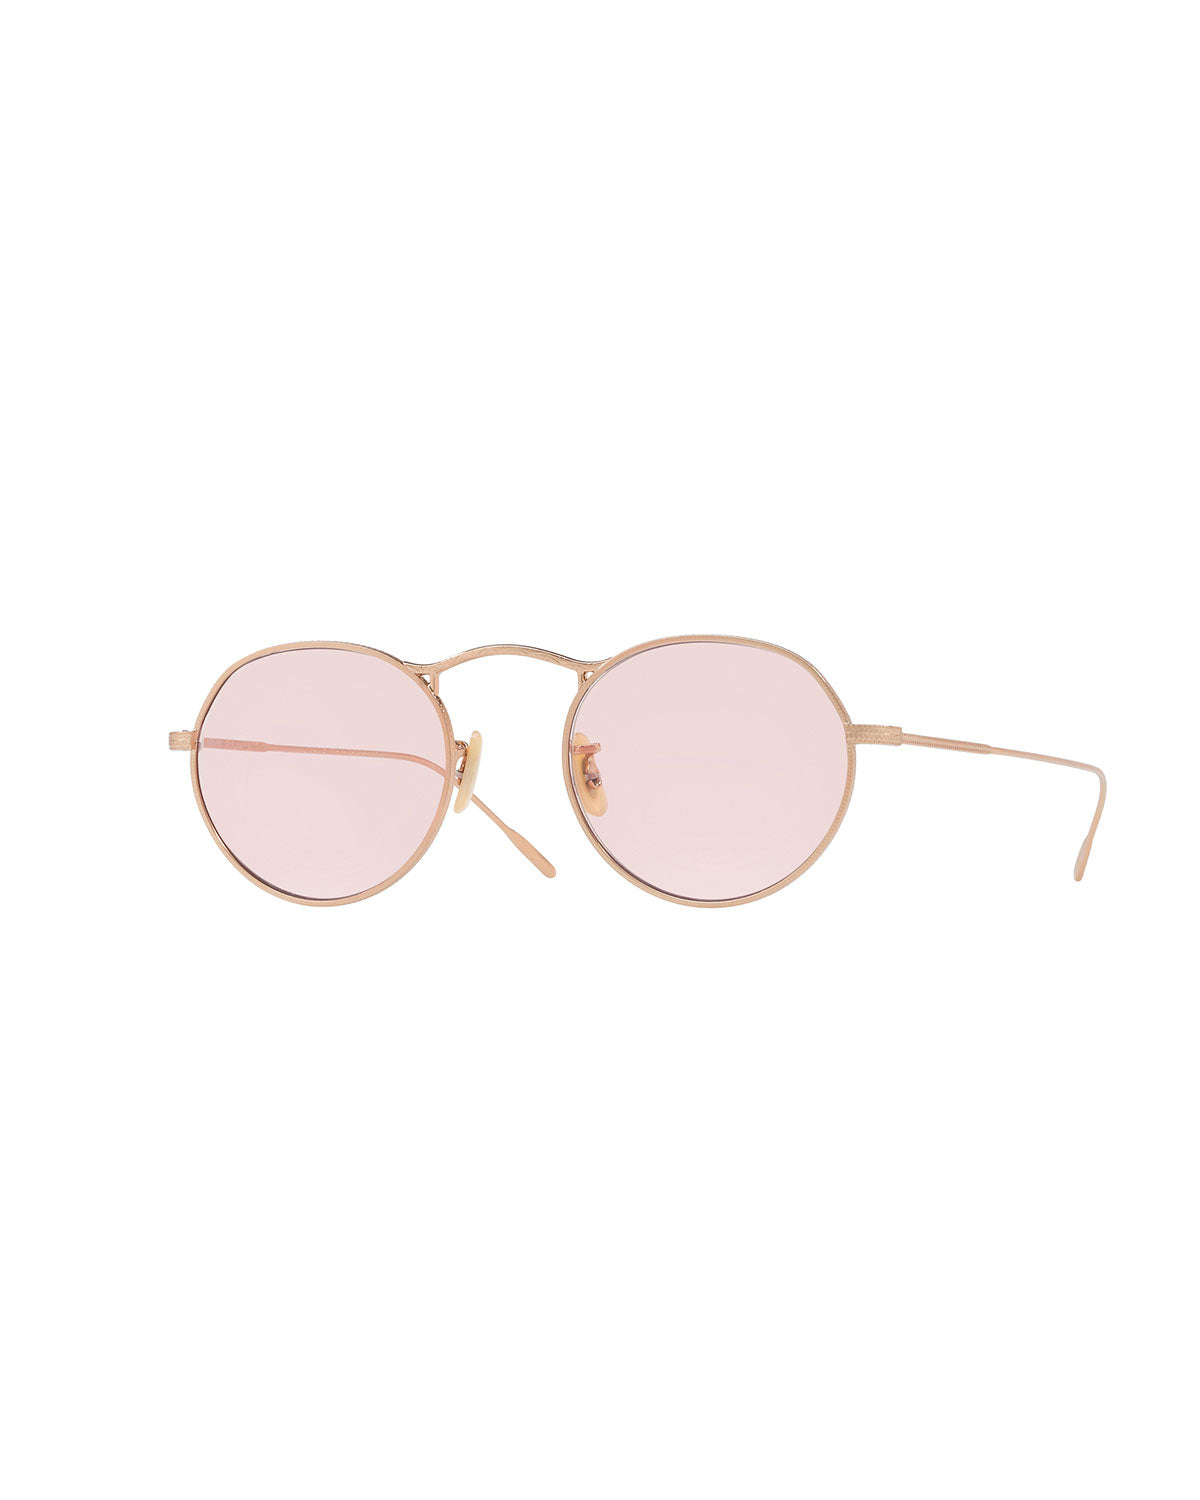 Oliver Peoples M-4 30th